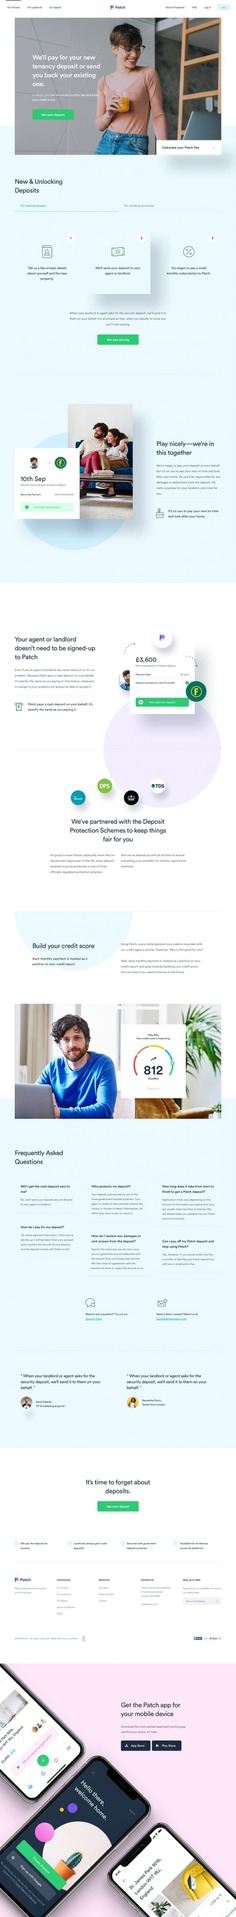 Patch – Tenant Landing Page by Filip Justić